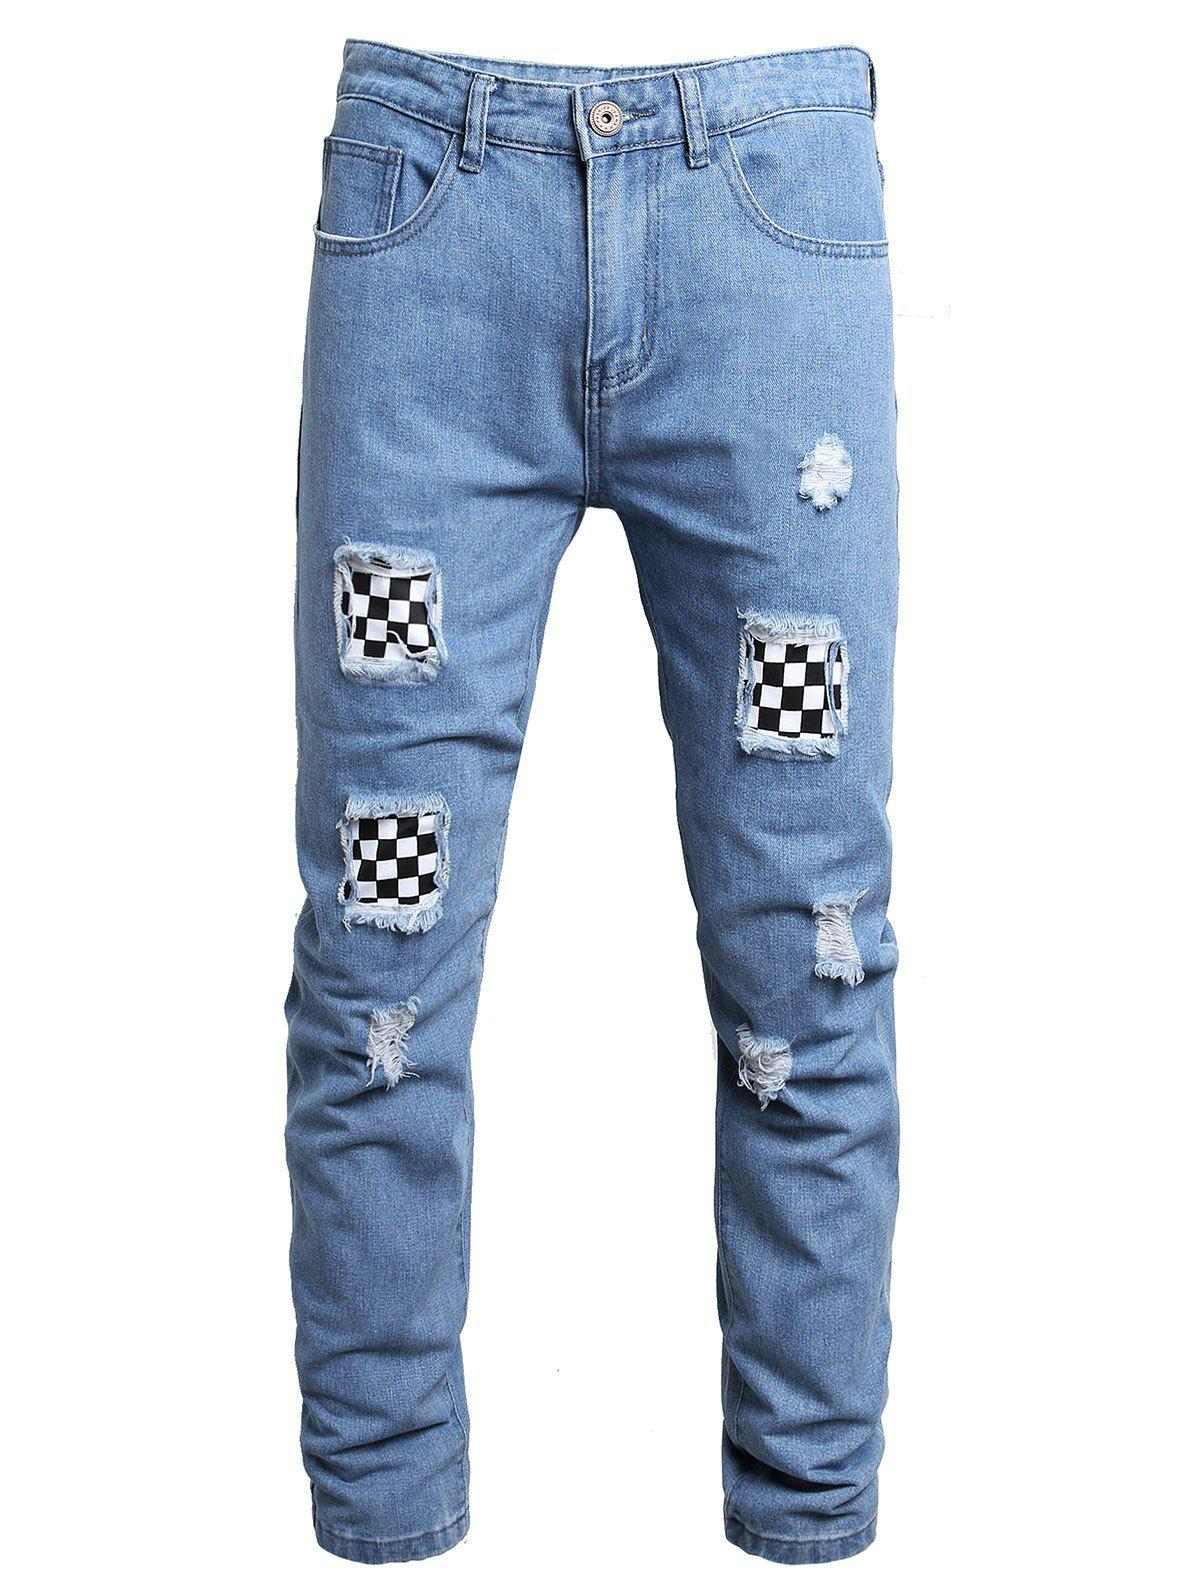 Ripped Checkerboard Print Patchwork Long Jeans - DENIM BLUE 38